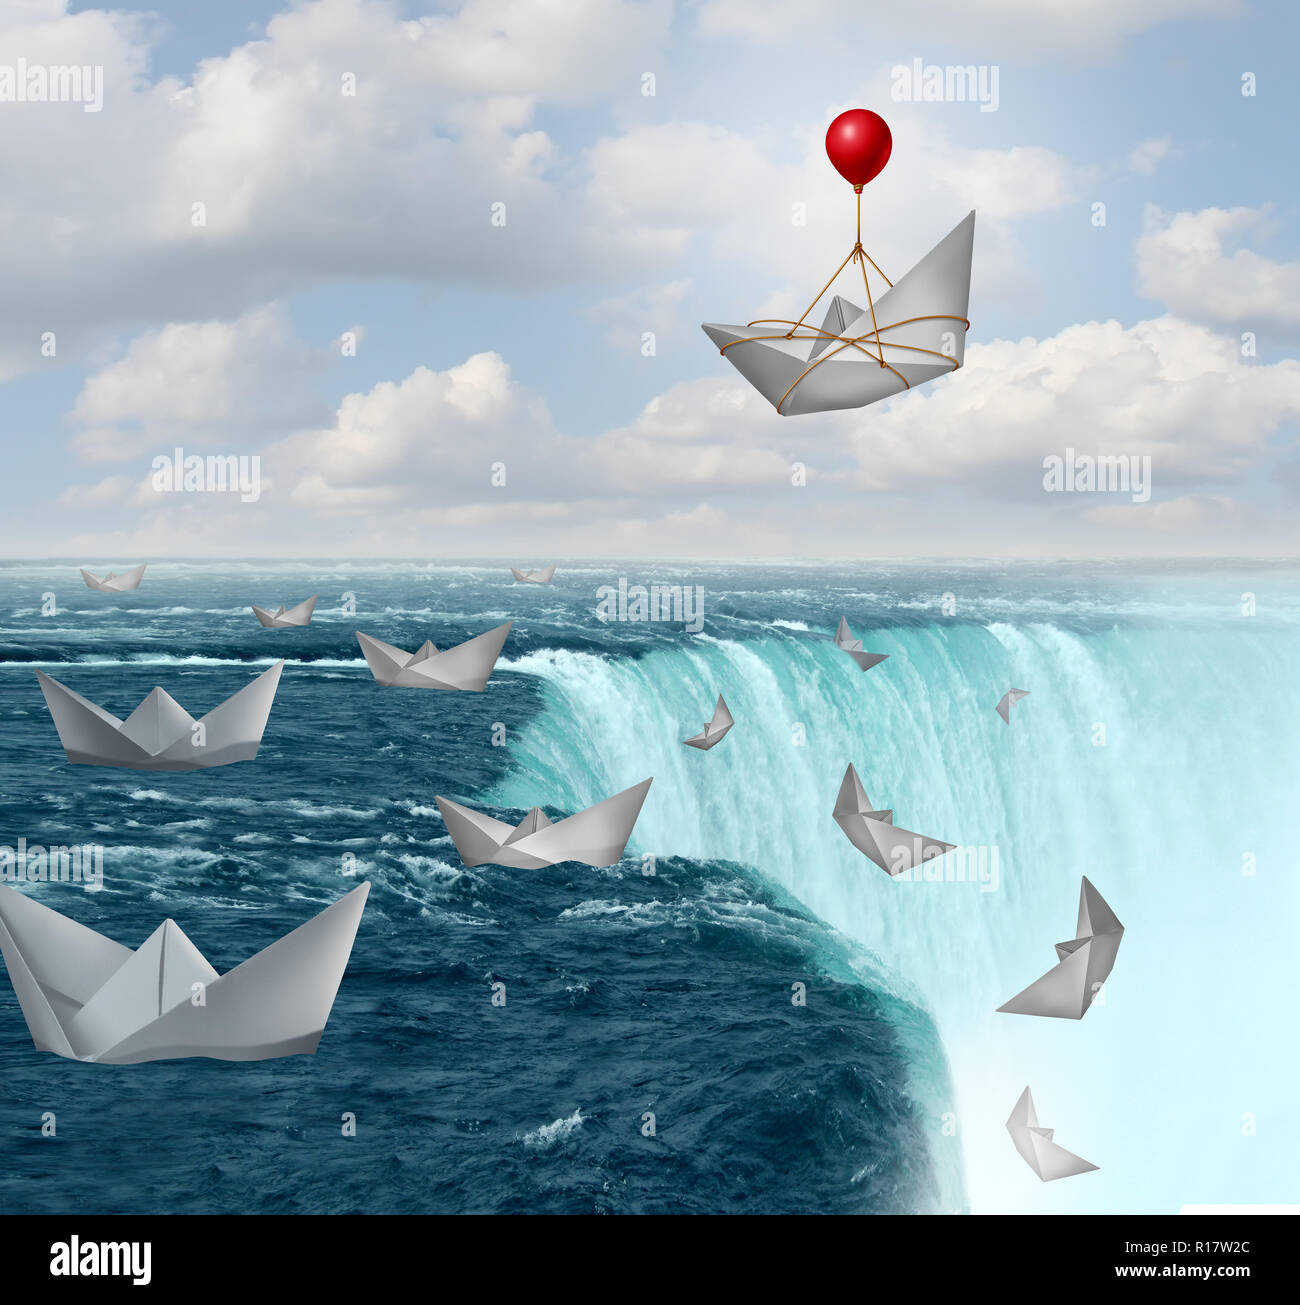 Insurance protection and risk aversion security symbol as paper boats in peril with one saved by a balloon as a coverage assurance concept. - Stock Image